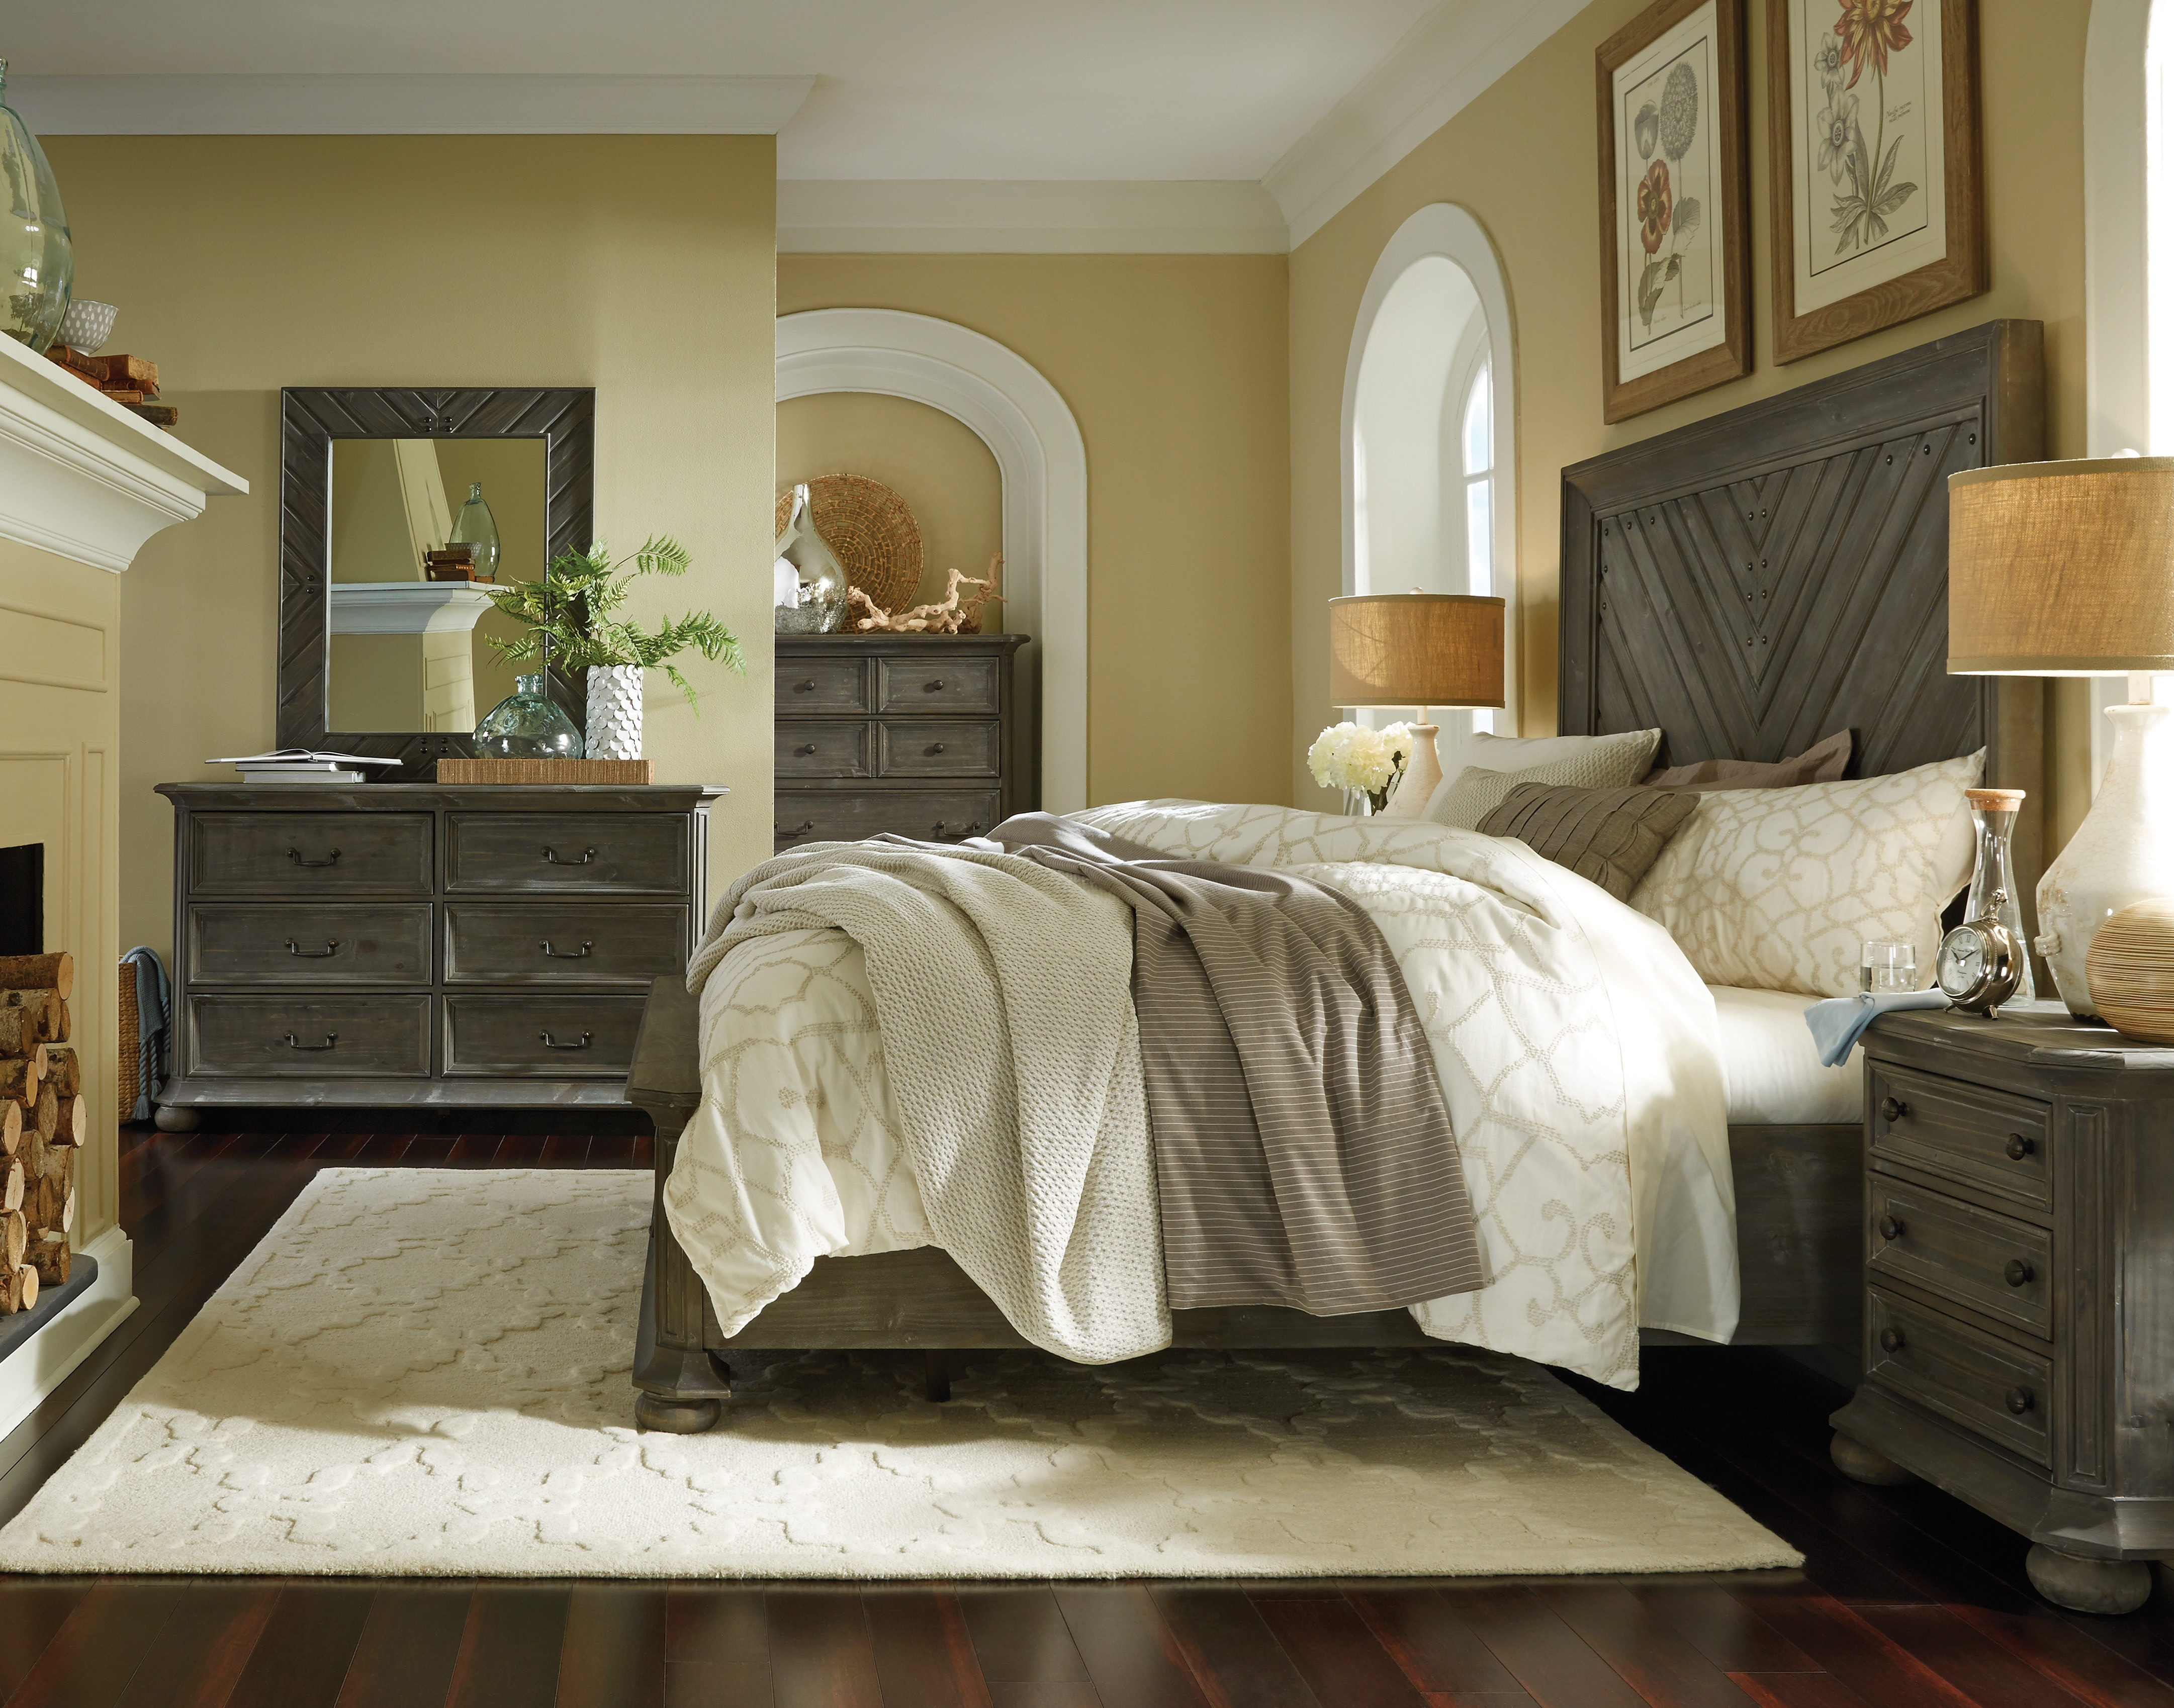 Cheswick 4-Piece King Bedroom Set - Washed Gray